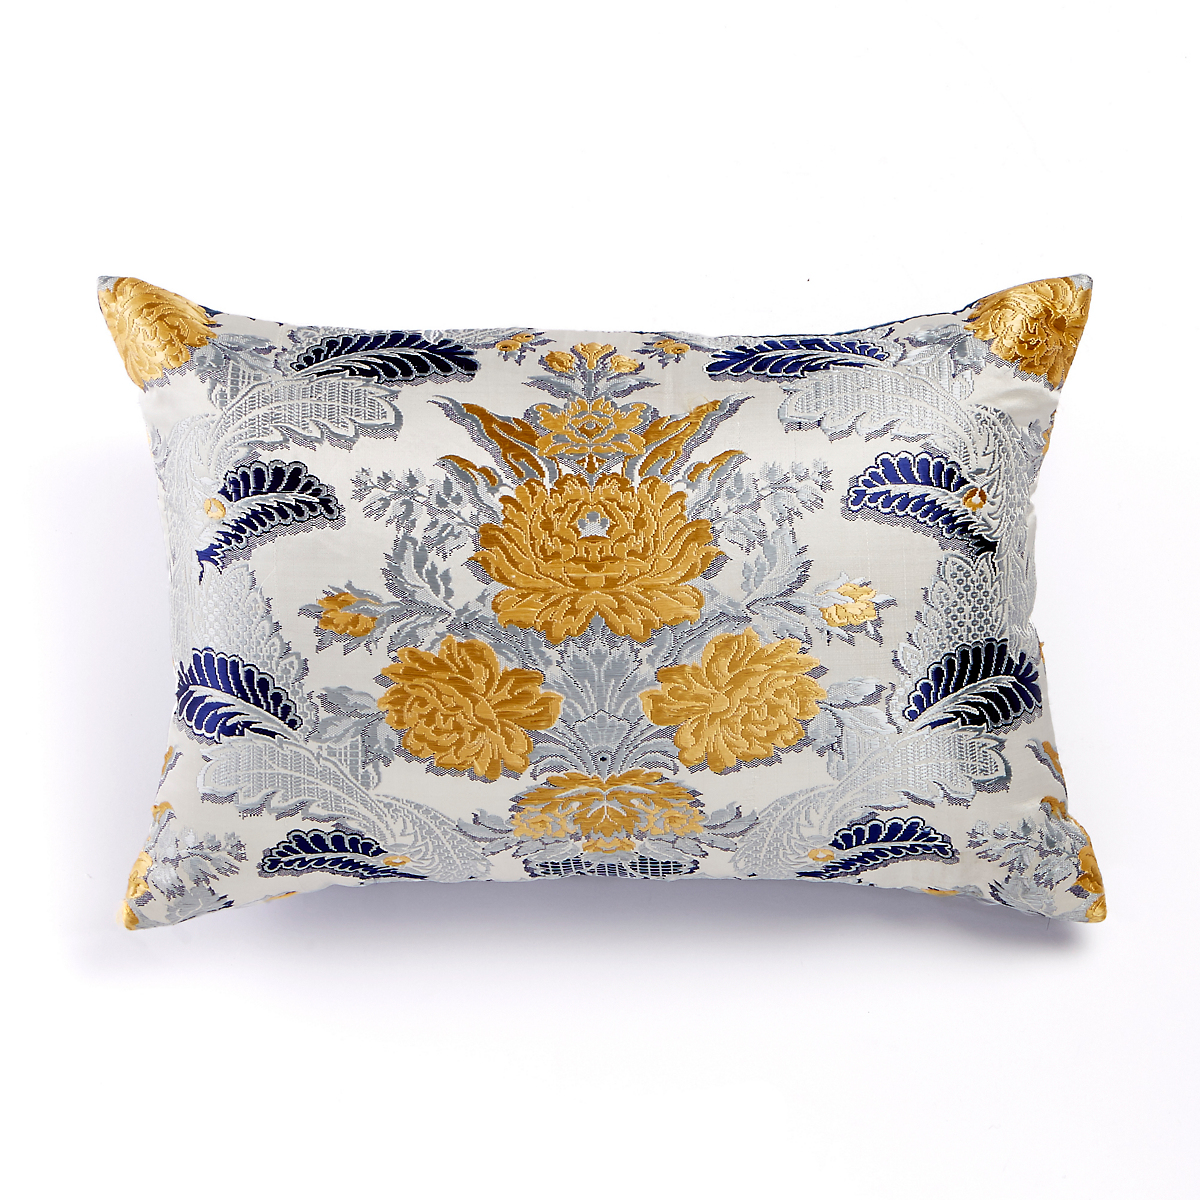 Chandra Blue Floral Silk Lumbar Pillow